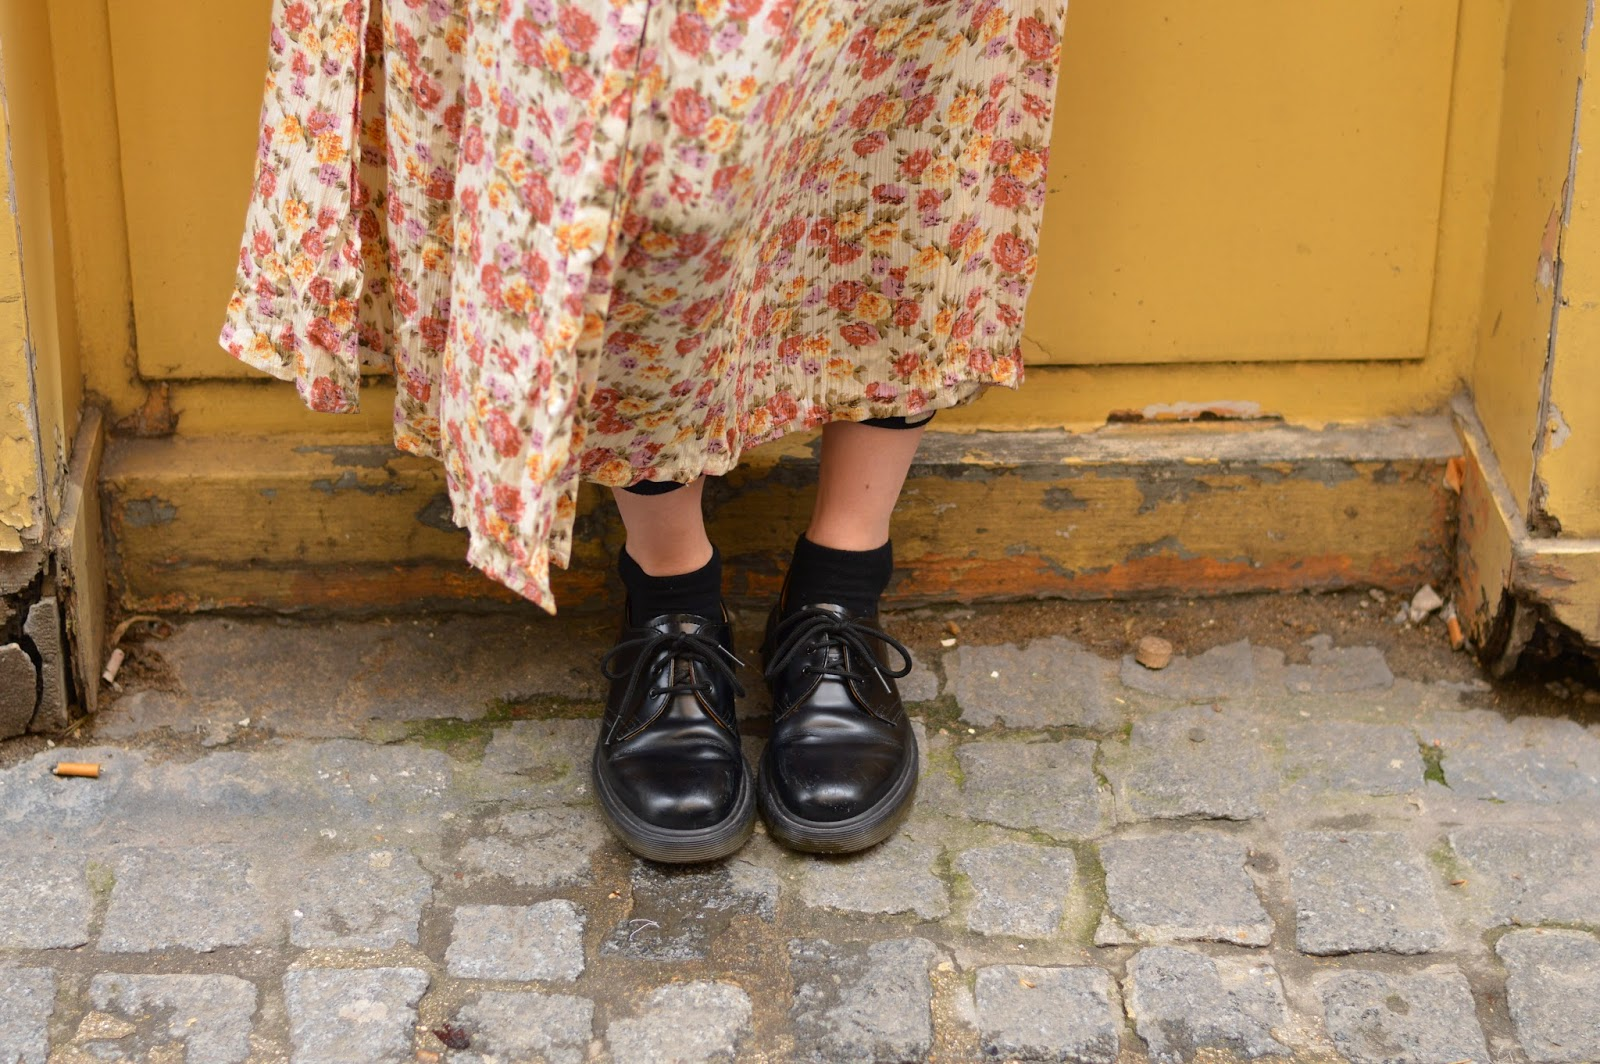 Style Dr Martens shoes with a floral summer dress